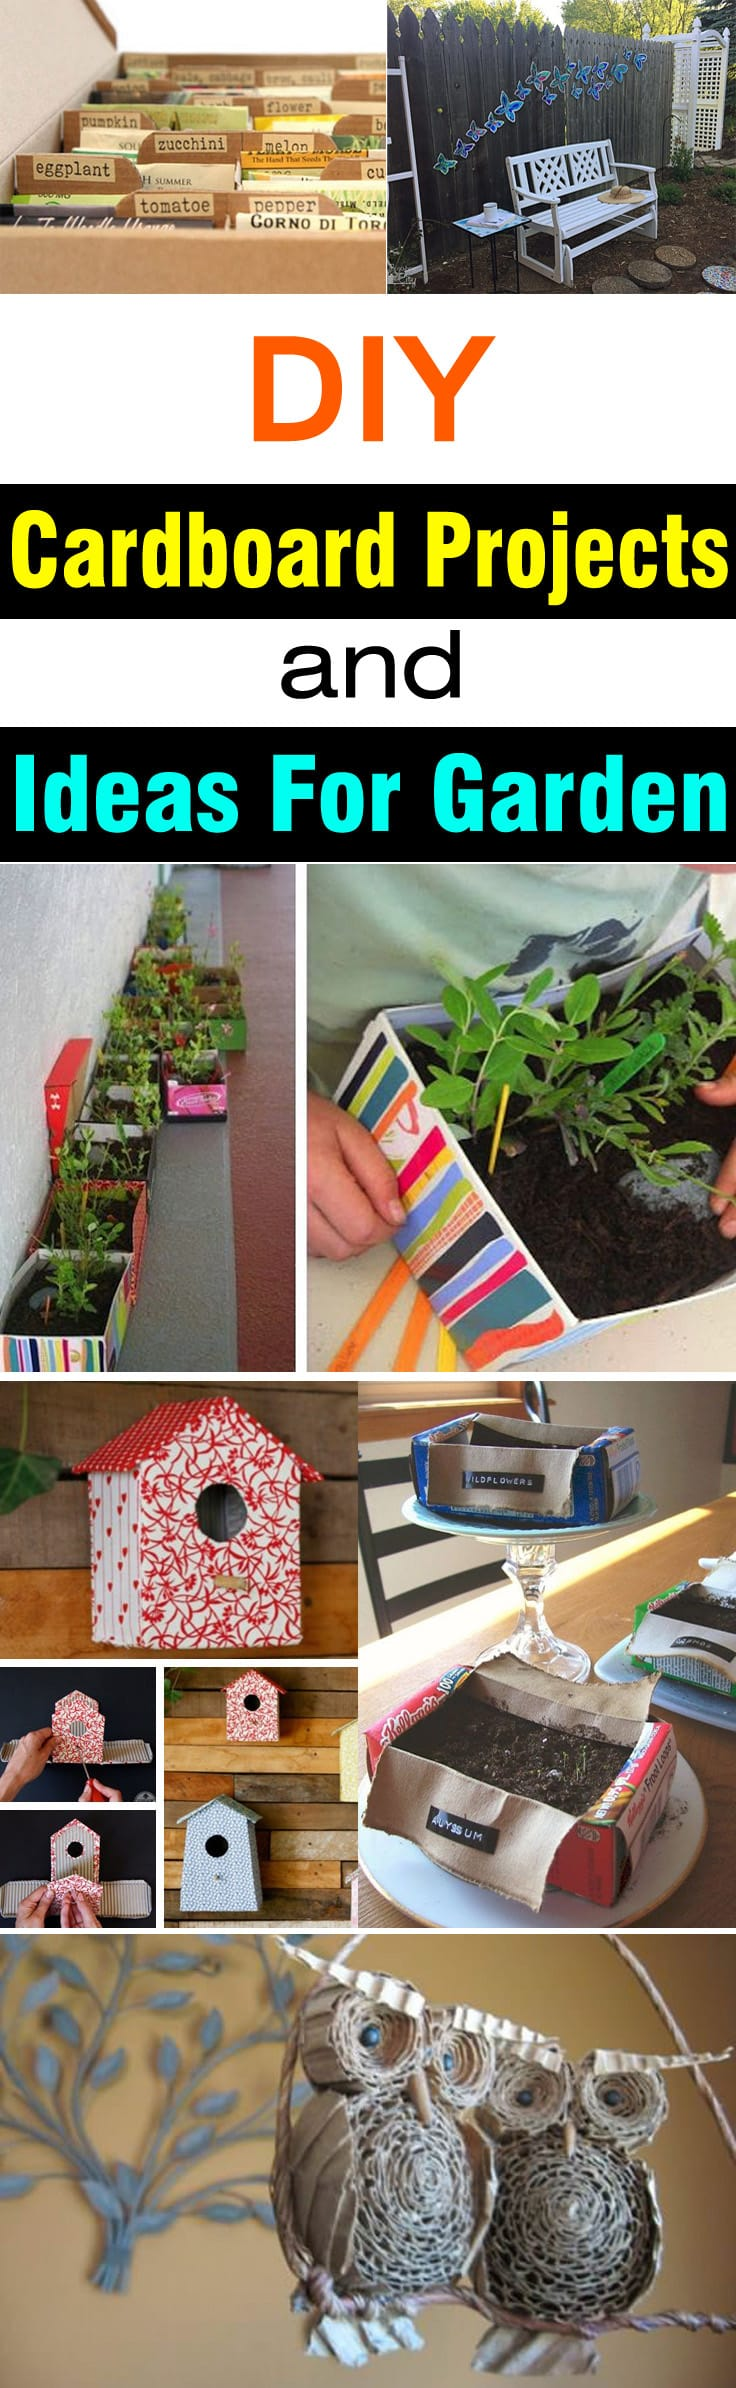 If you love to recycle and have cardboards-- don't throw them, use them in your garden. Check out these DIY cardboard projects and ideas for the garden.